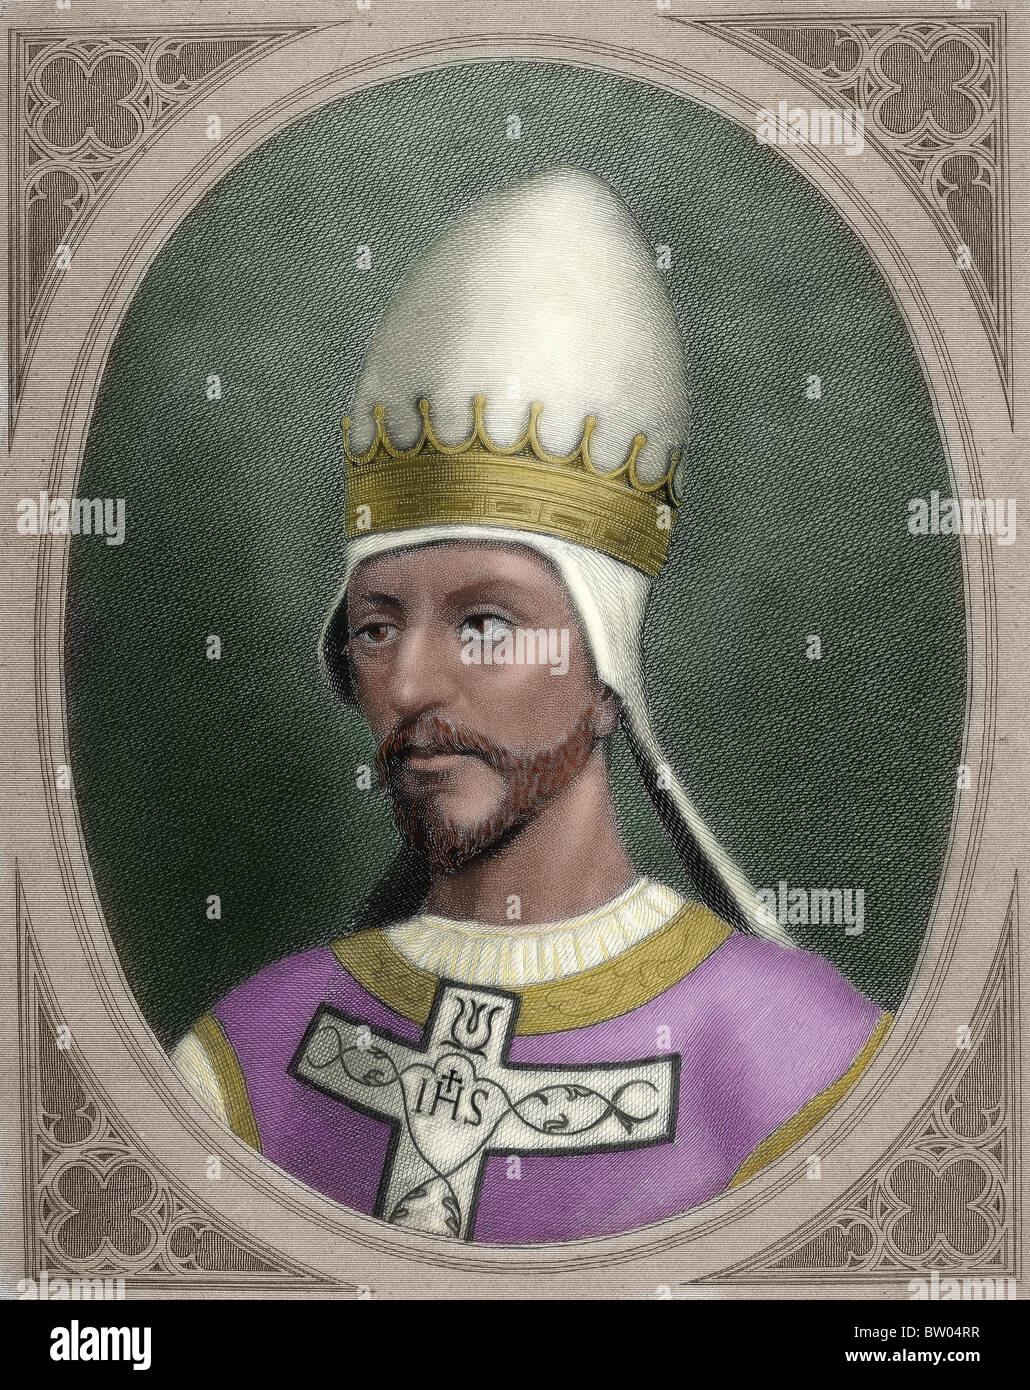 Pope Saint Gregory VII (c. 1015/1028-1085), born Hildebrand of Sovana. Pope from April 22, 1073, until his death. - Stock Image